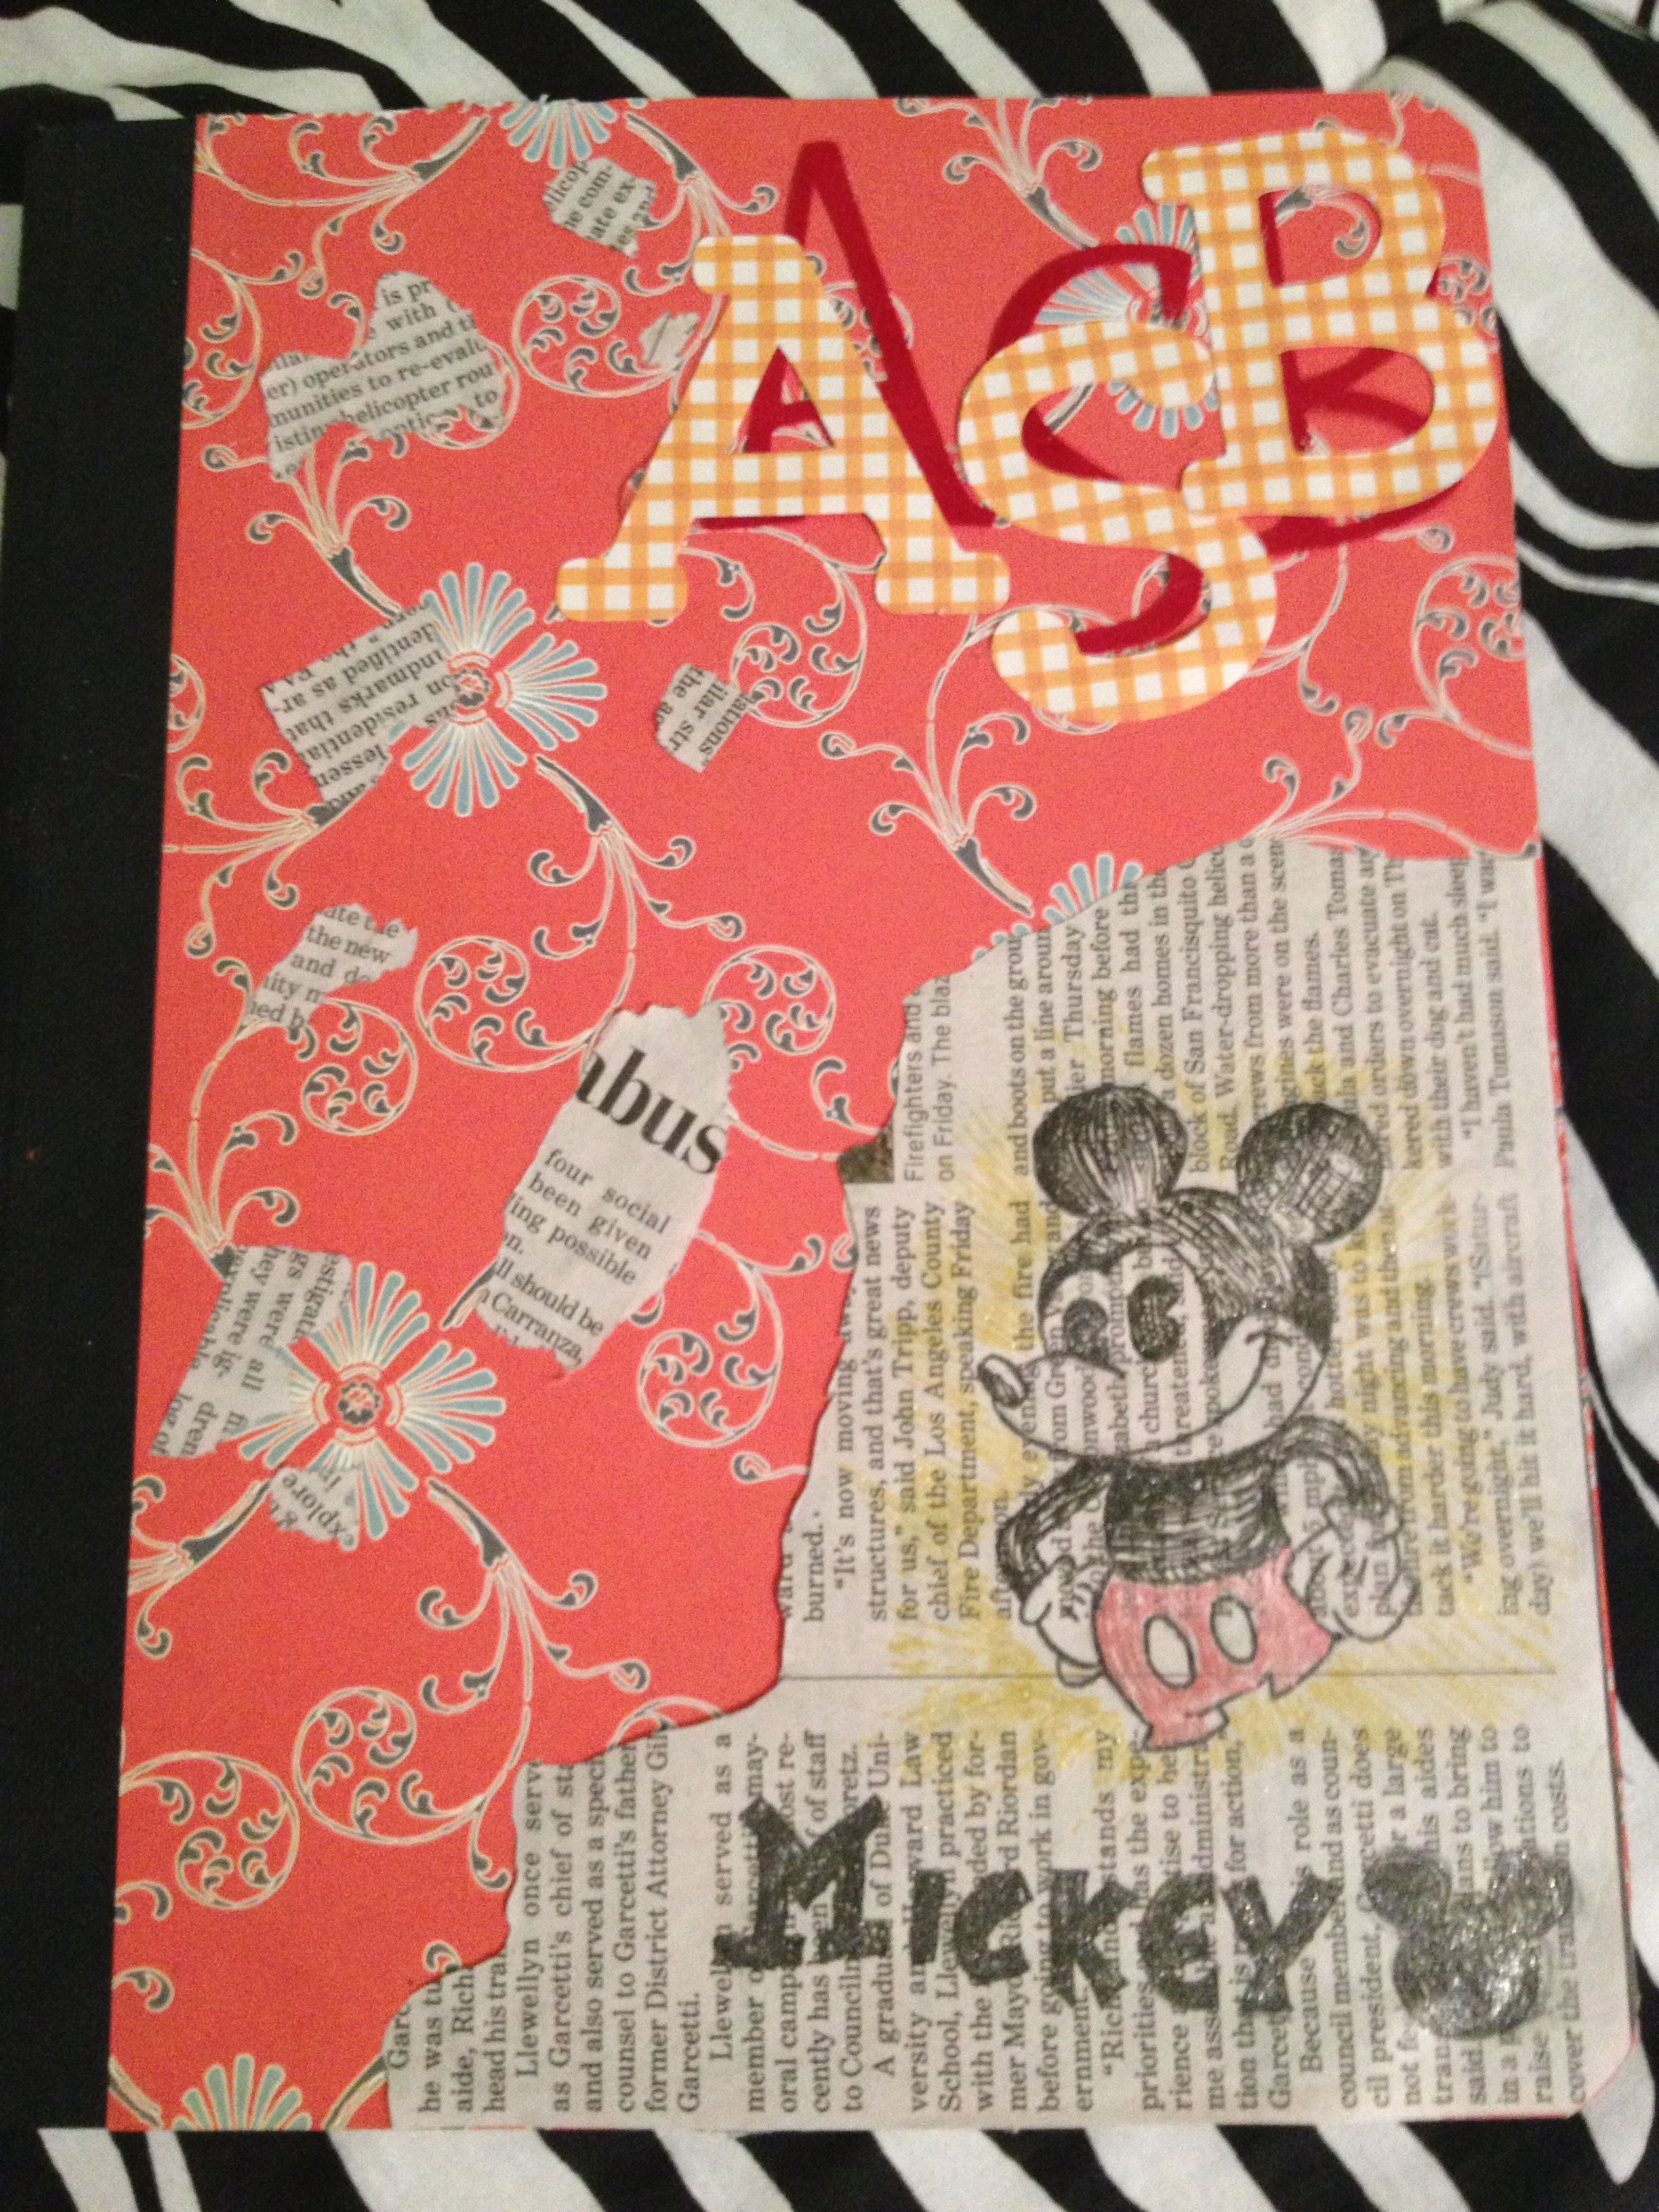 I decided to decorate my notebook Disney style (;